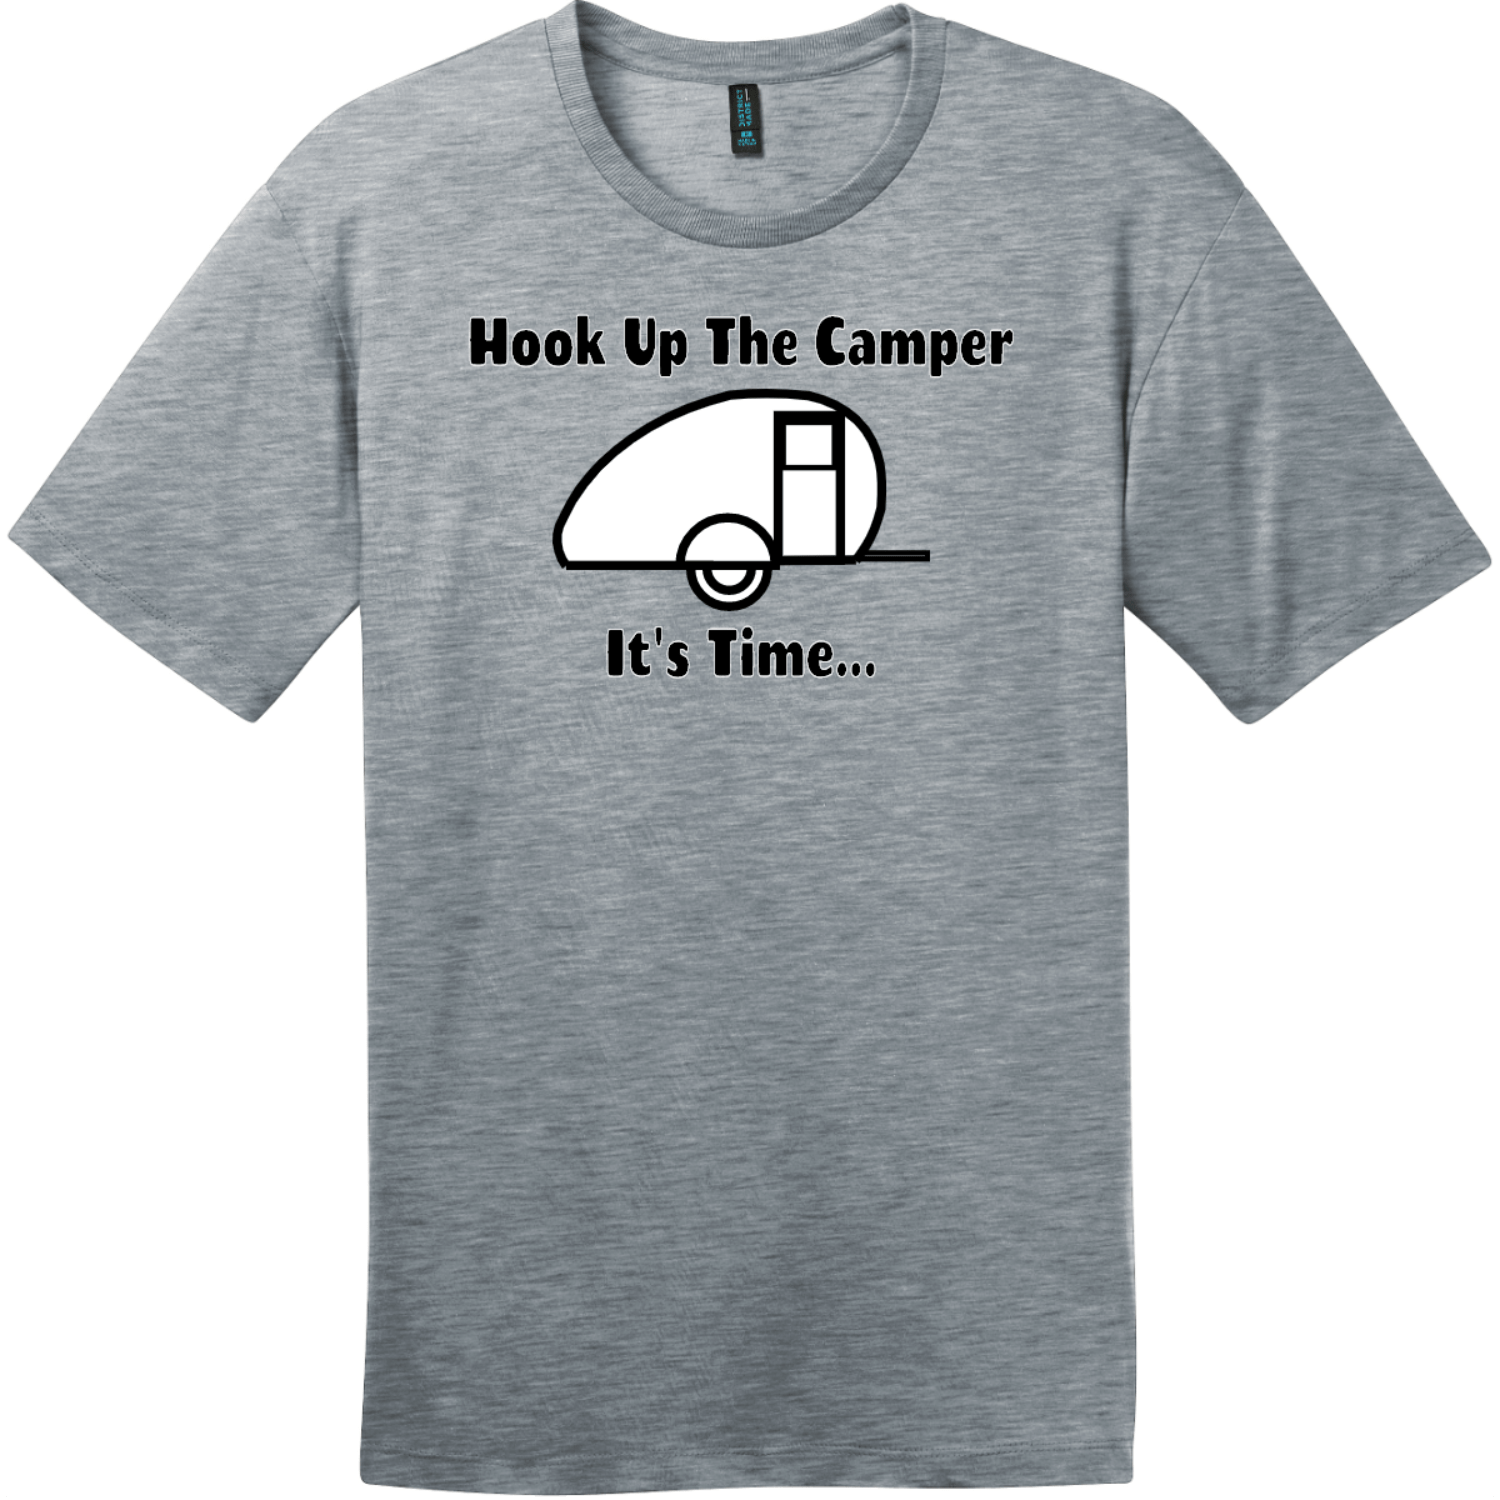 Hook Up The Camper T-Shirt Heathered Steel District Perfect Weight Tee DT104